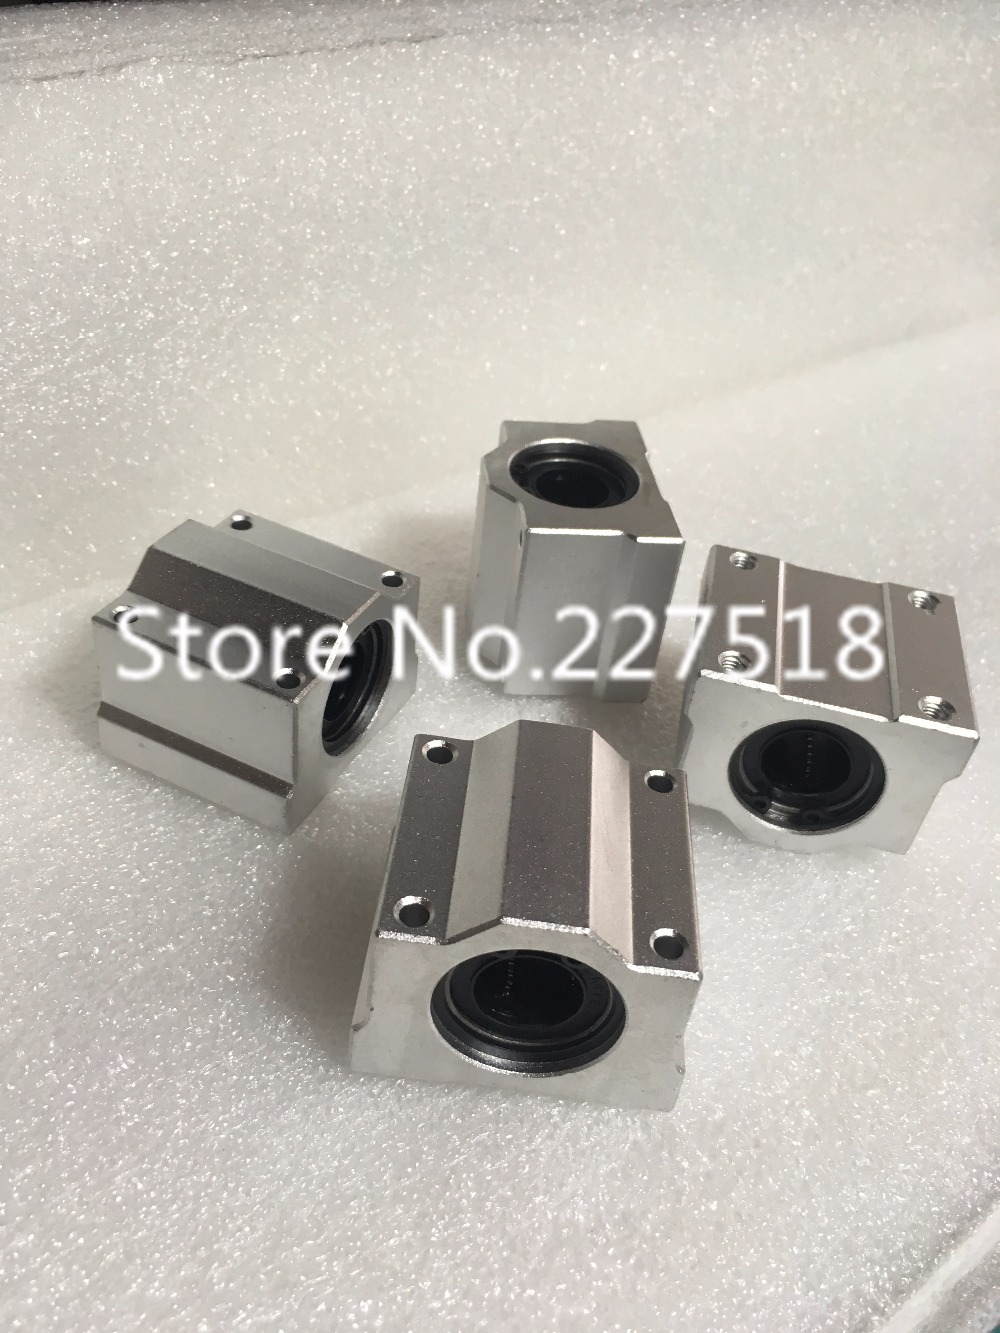 2pcs SCS25UU 25mm linear guide Linear axis ball bearing block with LM25UU bush, pillow block linear unit for CNC part 1pc scv40 scv40uu sc40vuu 40mm linear bearing bush bushing sc40vuu with lm40uu bearing inside for cnc